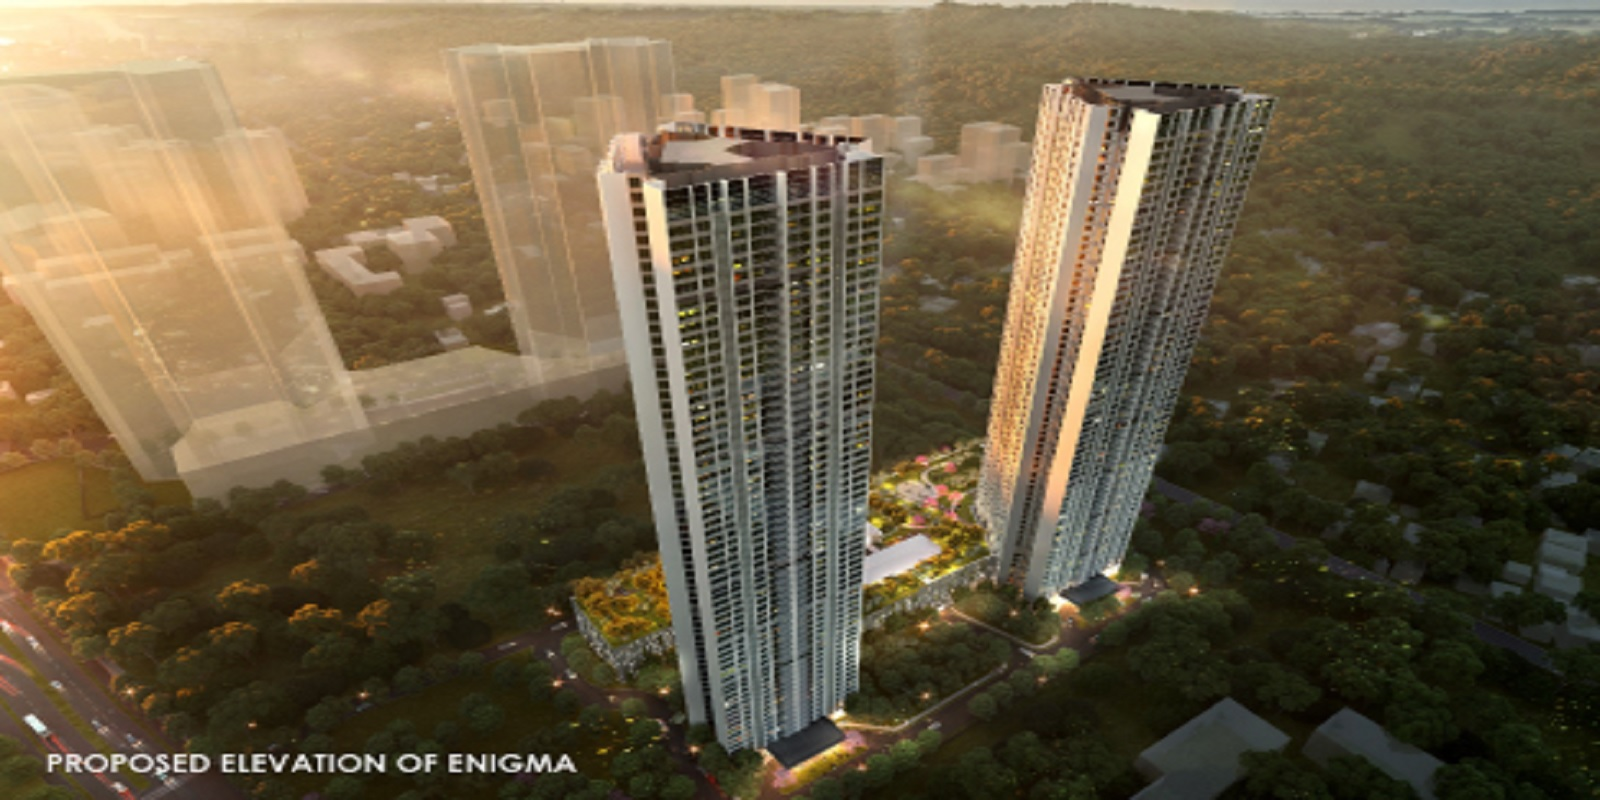 oberoi enigma project project large image1